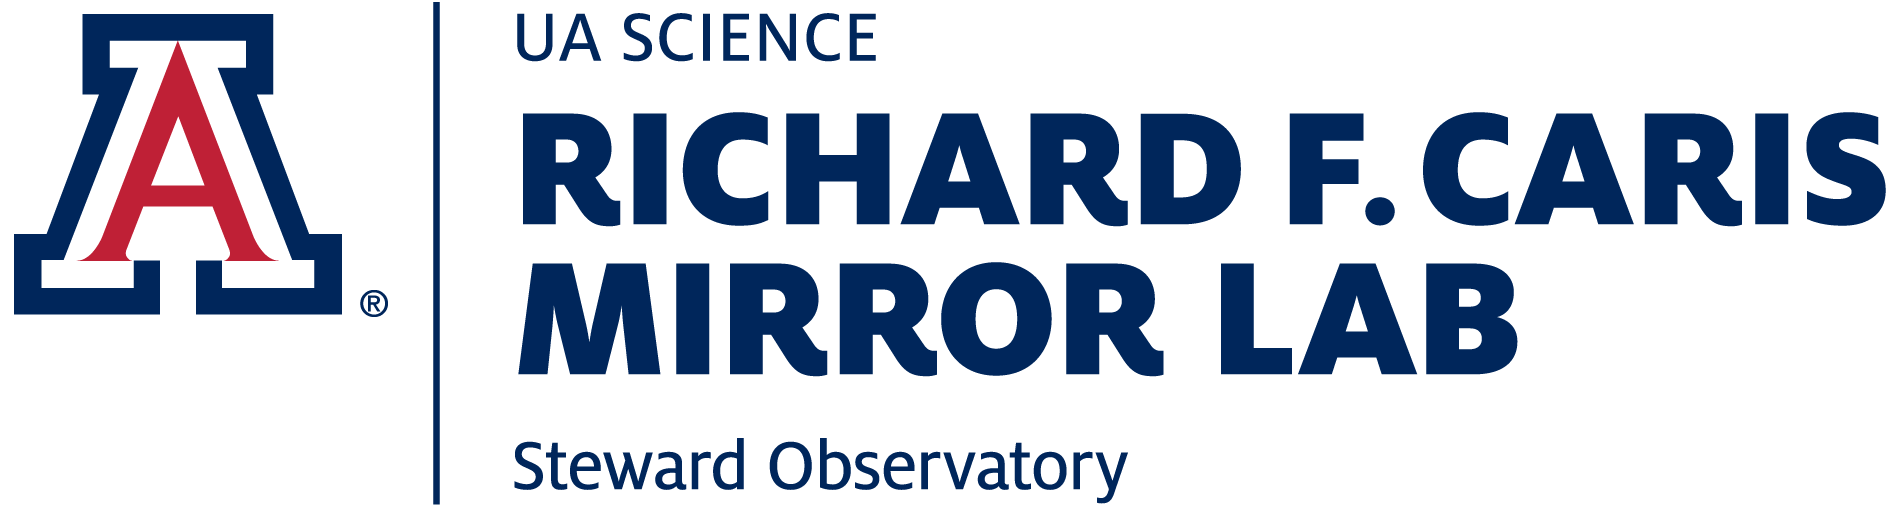 Steward Observatory Mirror Lab | Home